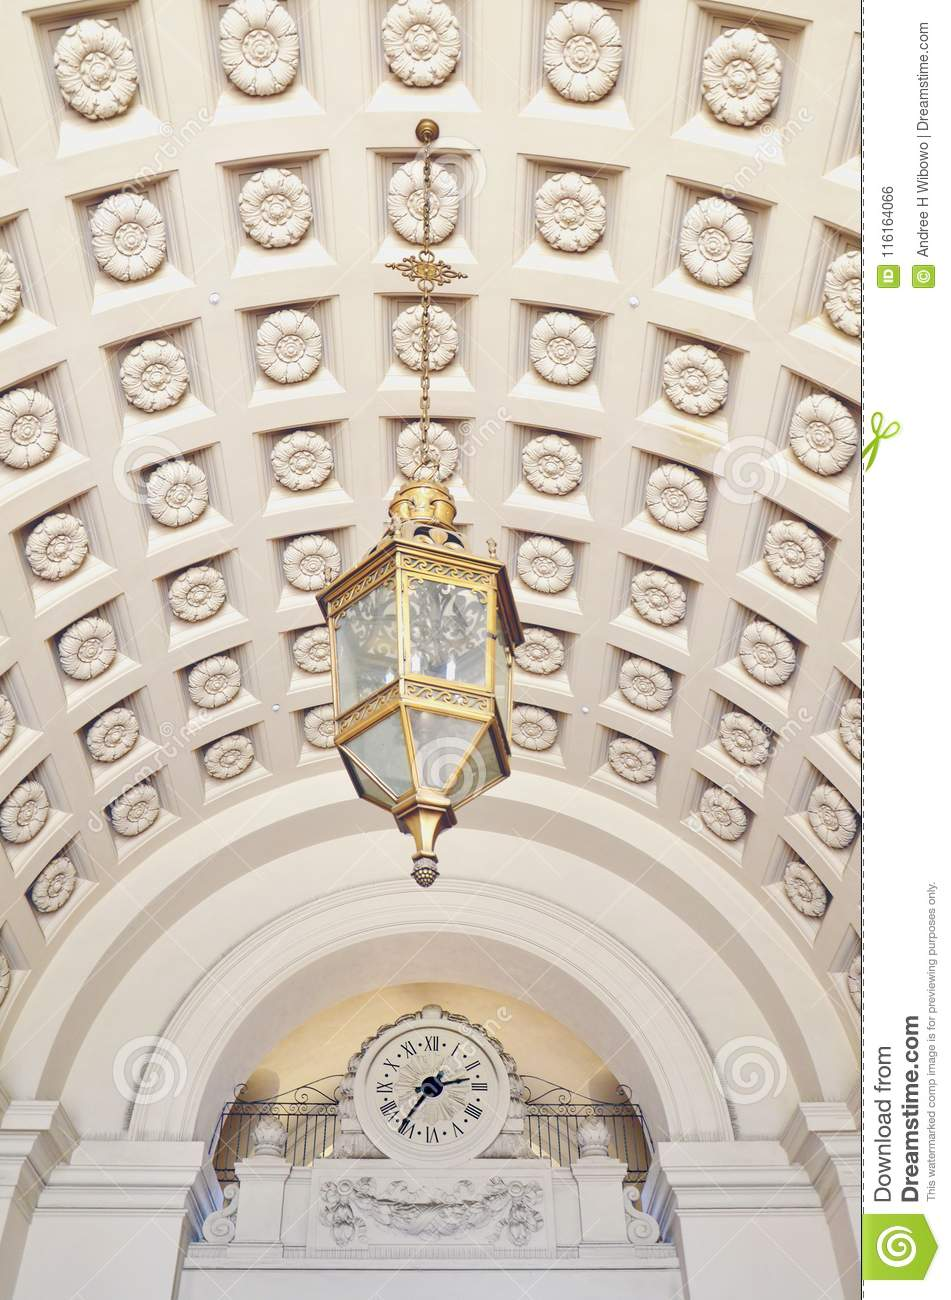 Chandelier Hanging from Ornamented Ceiling in front of a Clock